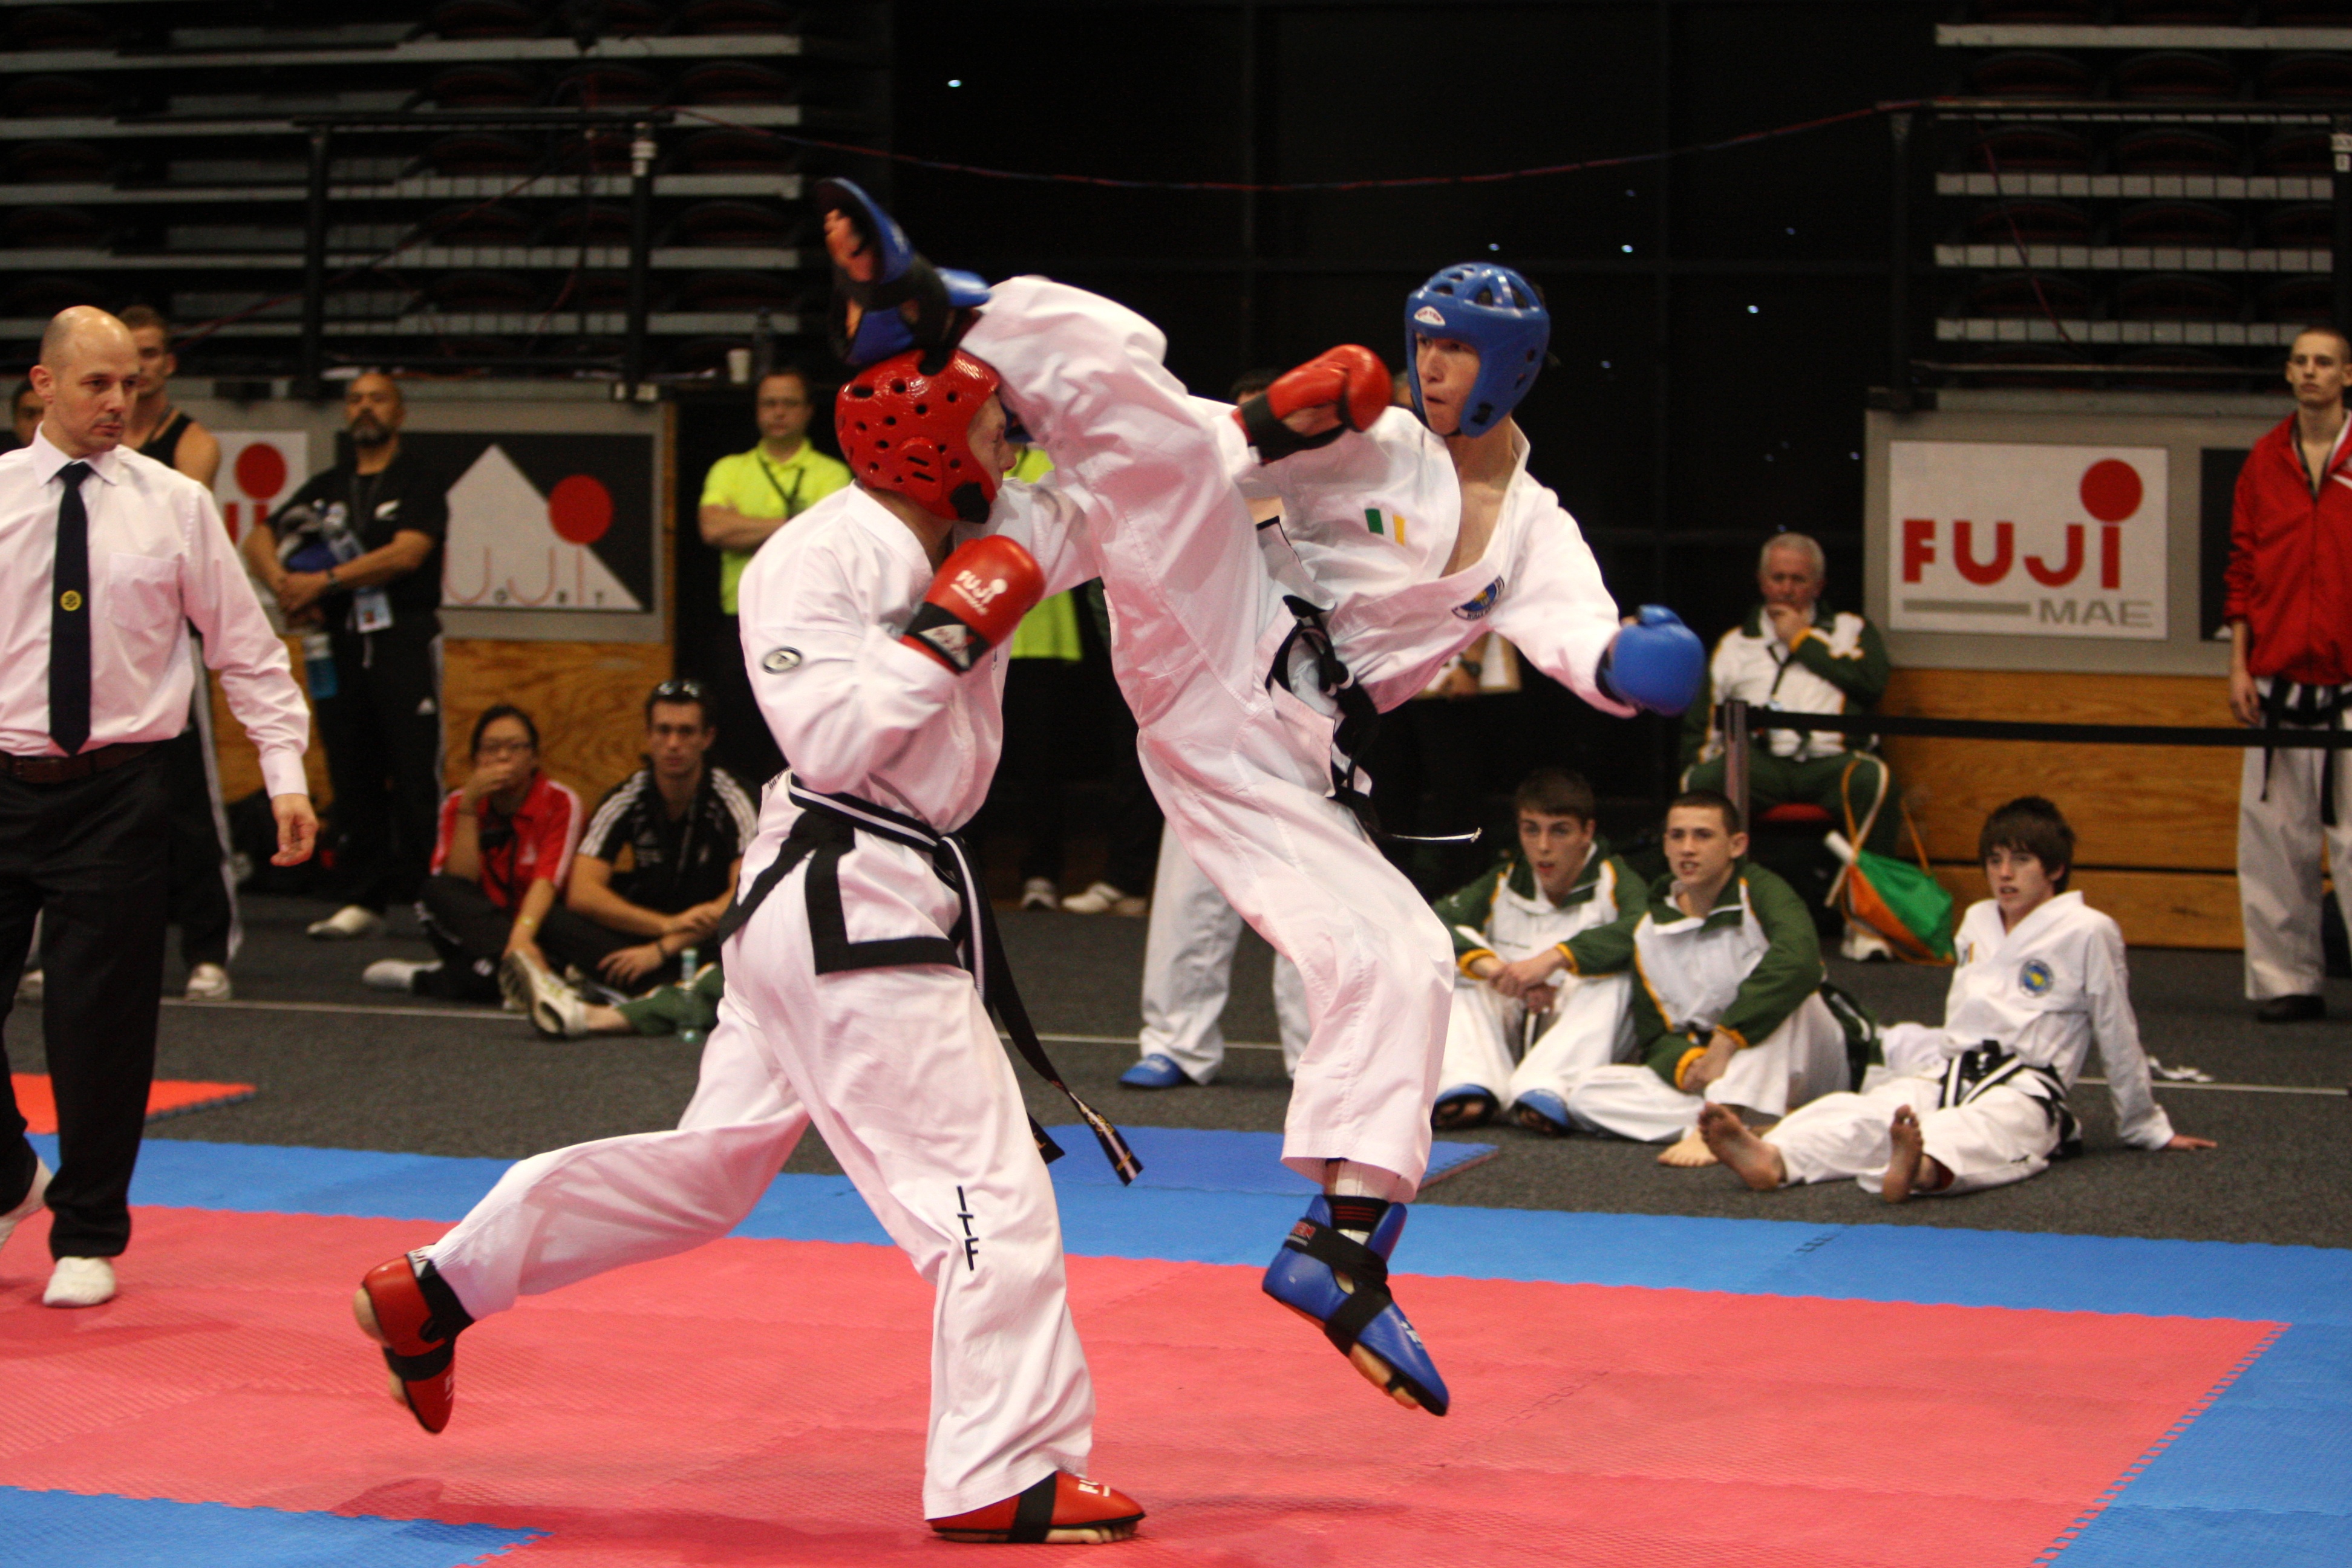 taekwondo korean martial arts Korean martial arts korean martial arts have two thousand years of history and an abundance of forms modern styles are practiced largely across the globe and are.